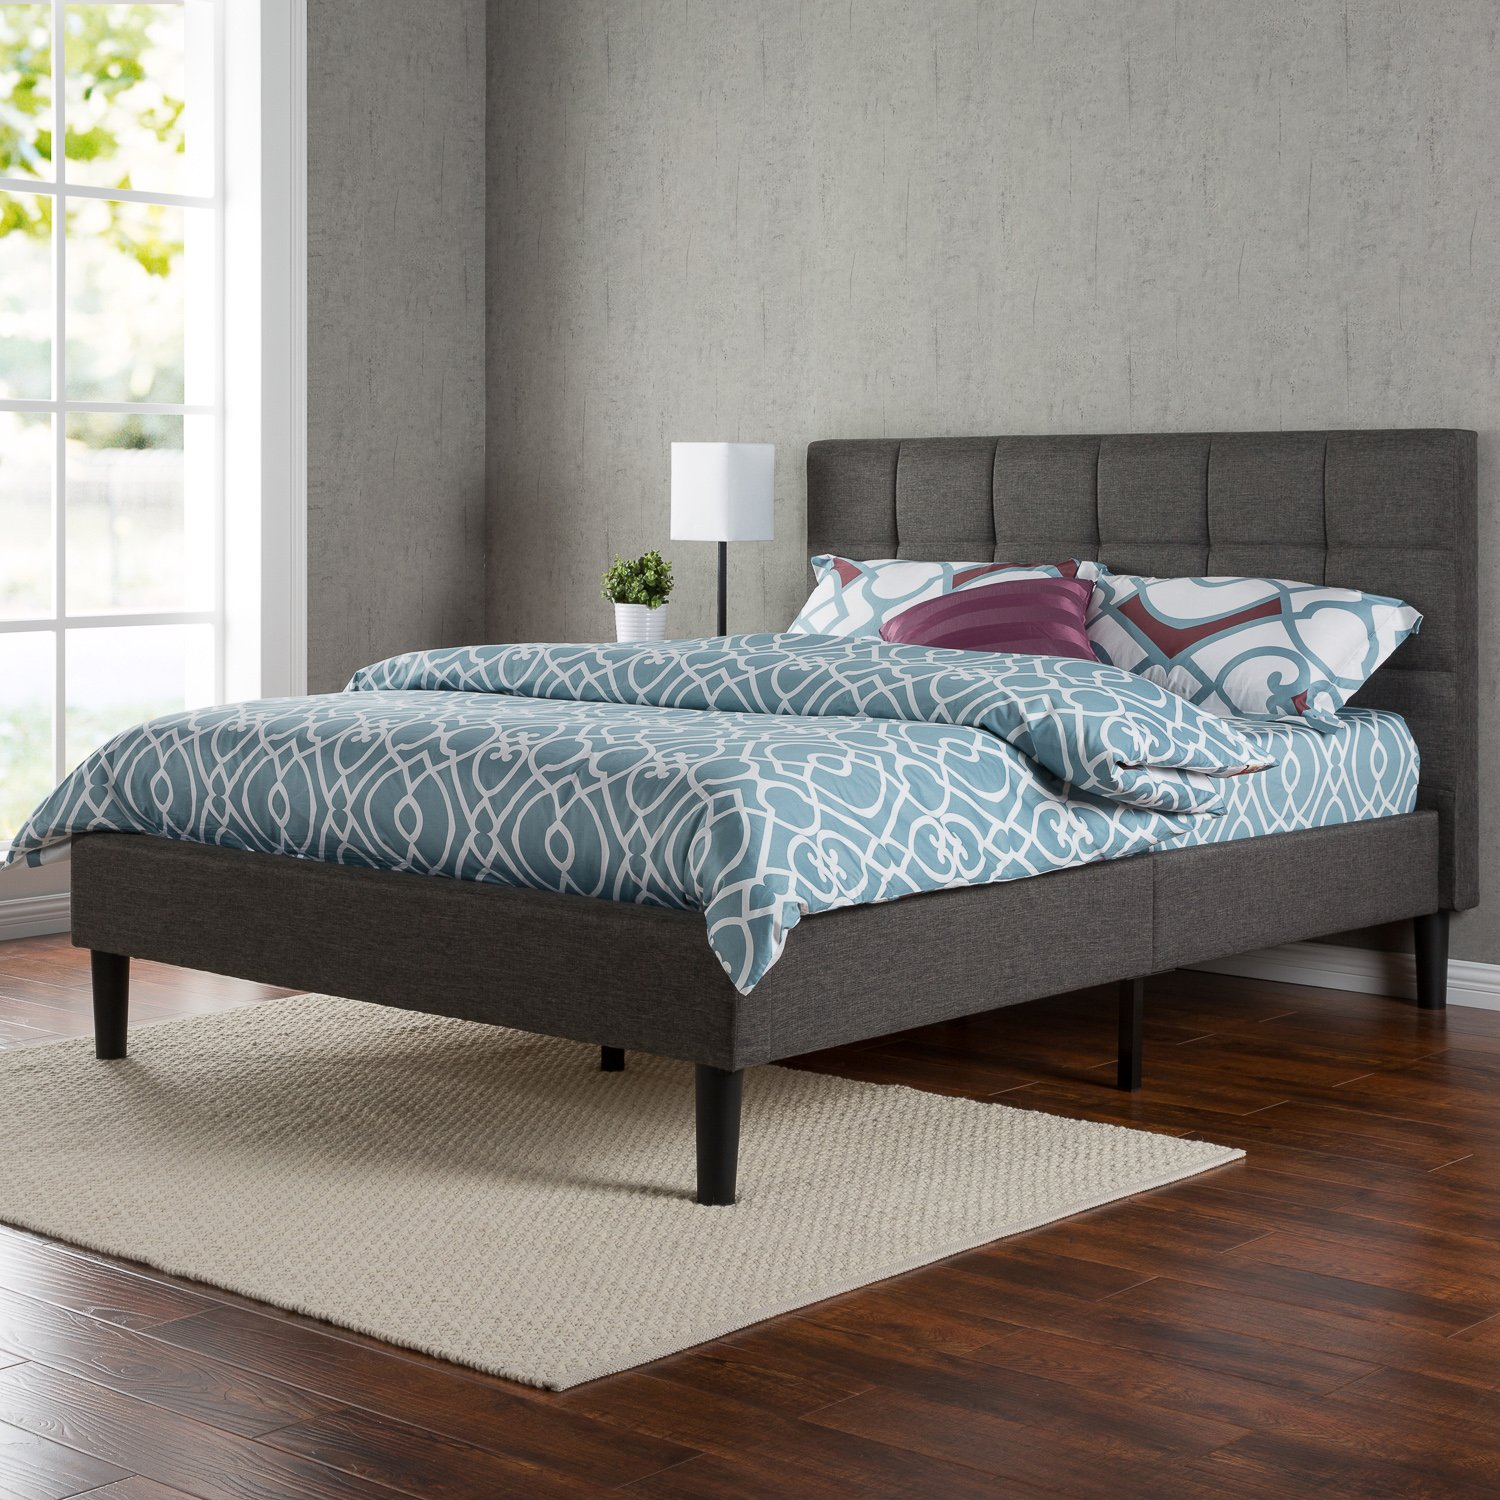 amazoncom zinus upholstered square stitched platform bed with wooden slats queen kitchen dining